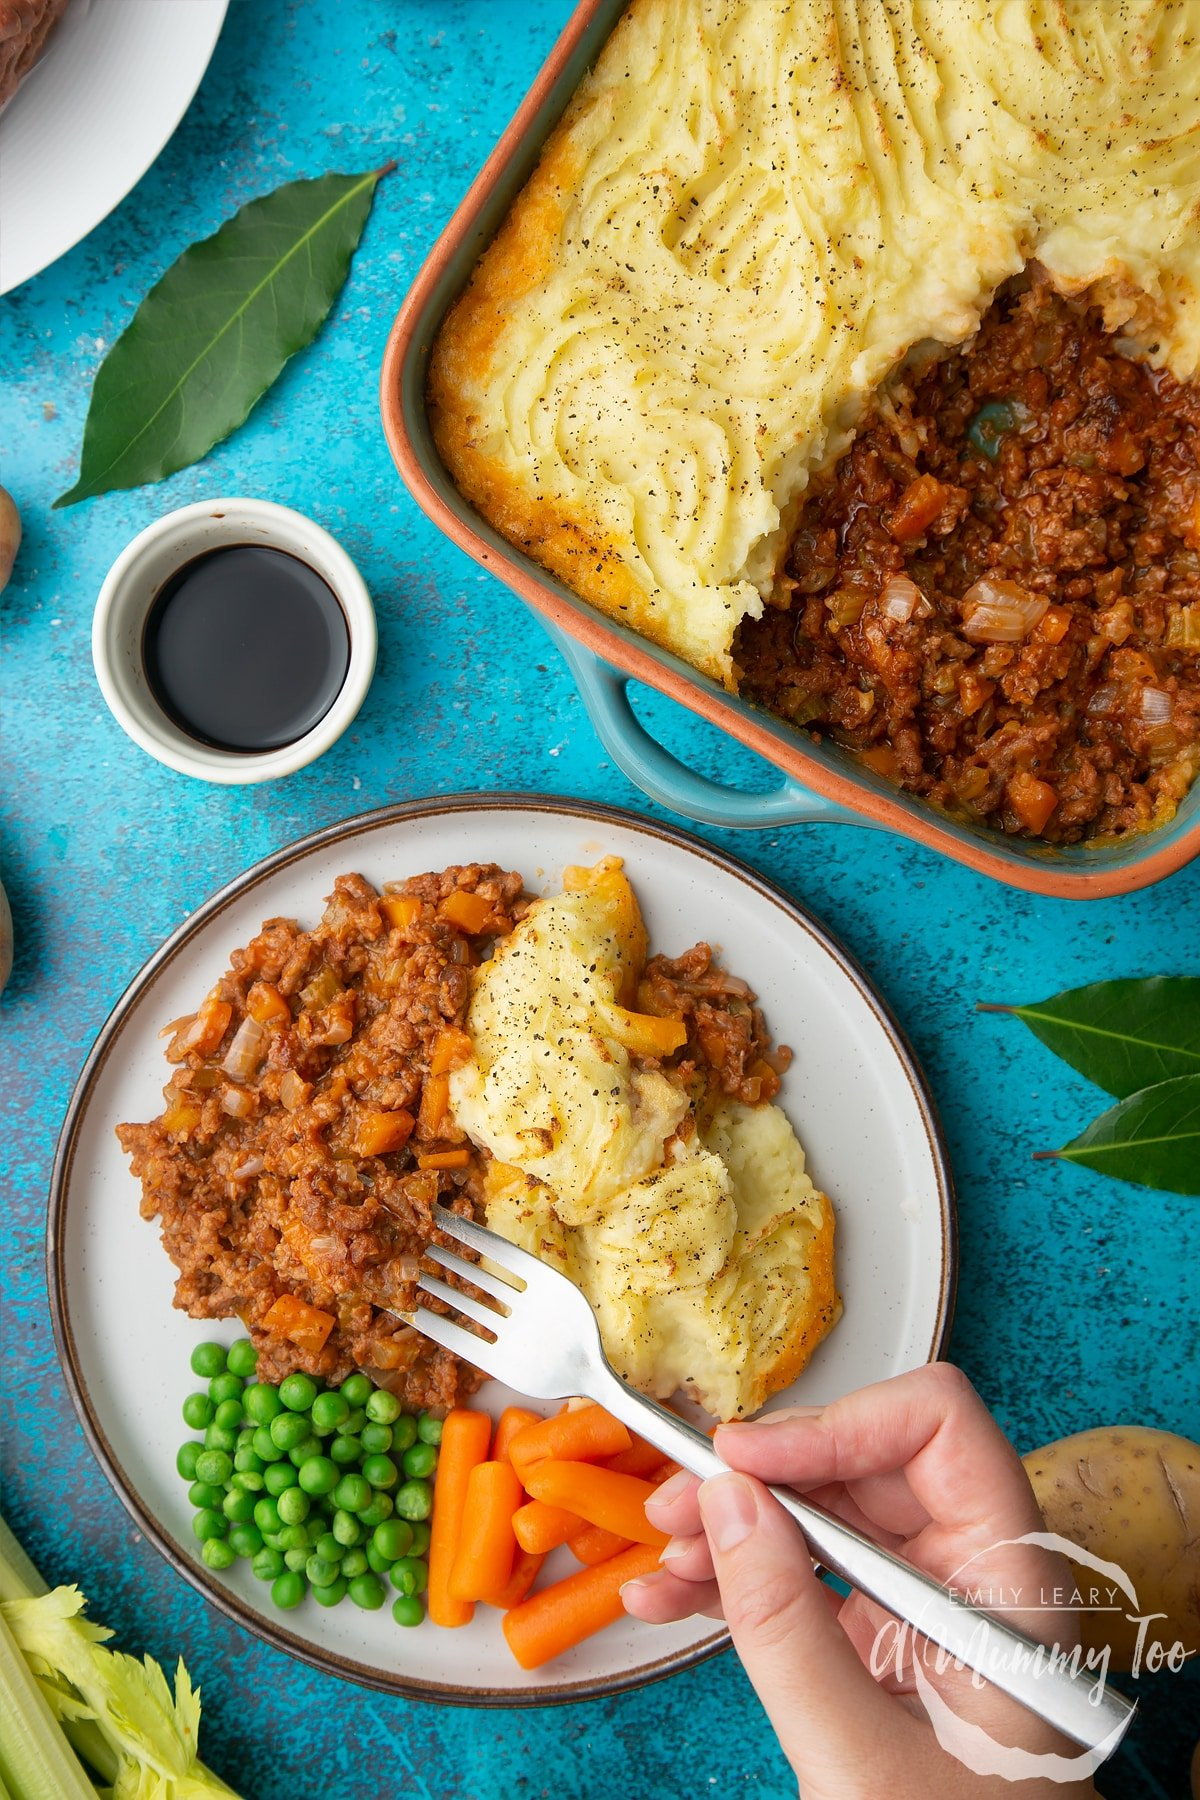 Vegan cottage pie served on a plate with peas and carrots. A hand holding a fork reaches in to take some. More pie is shown in its dish. Ingredients are scattered around.